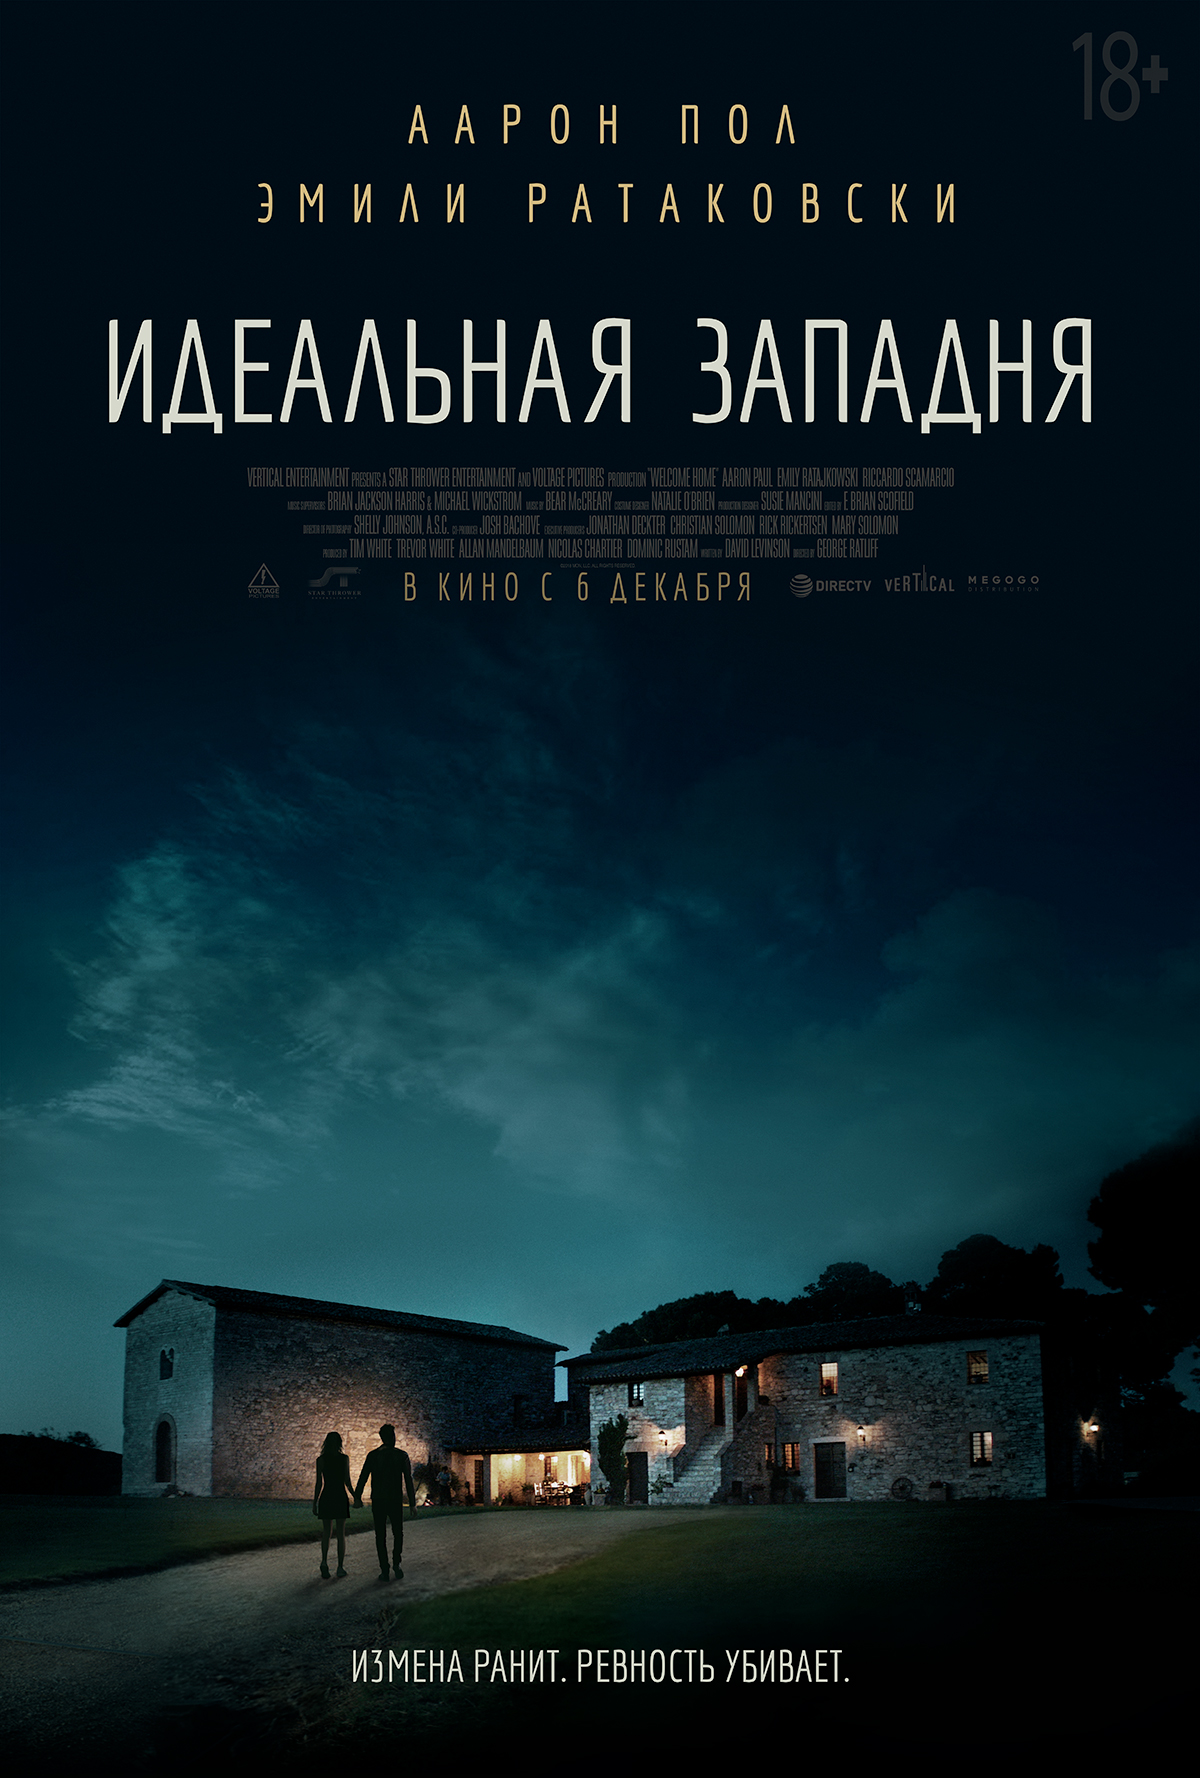 Poster (3) for the movie The Perfect Trap (Welcome Home, 2018)